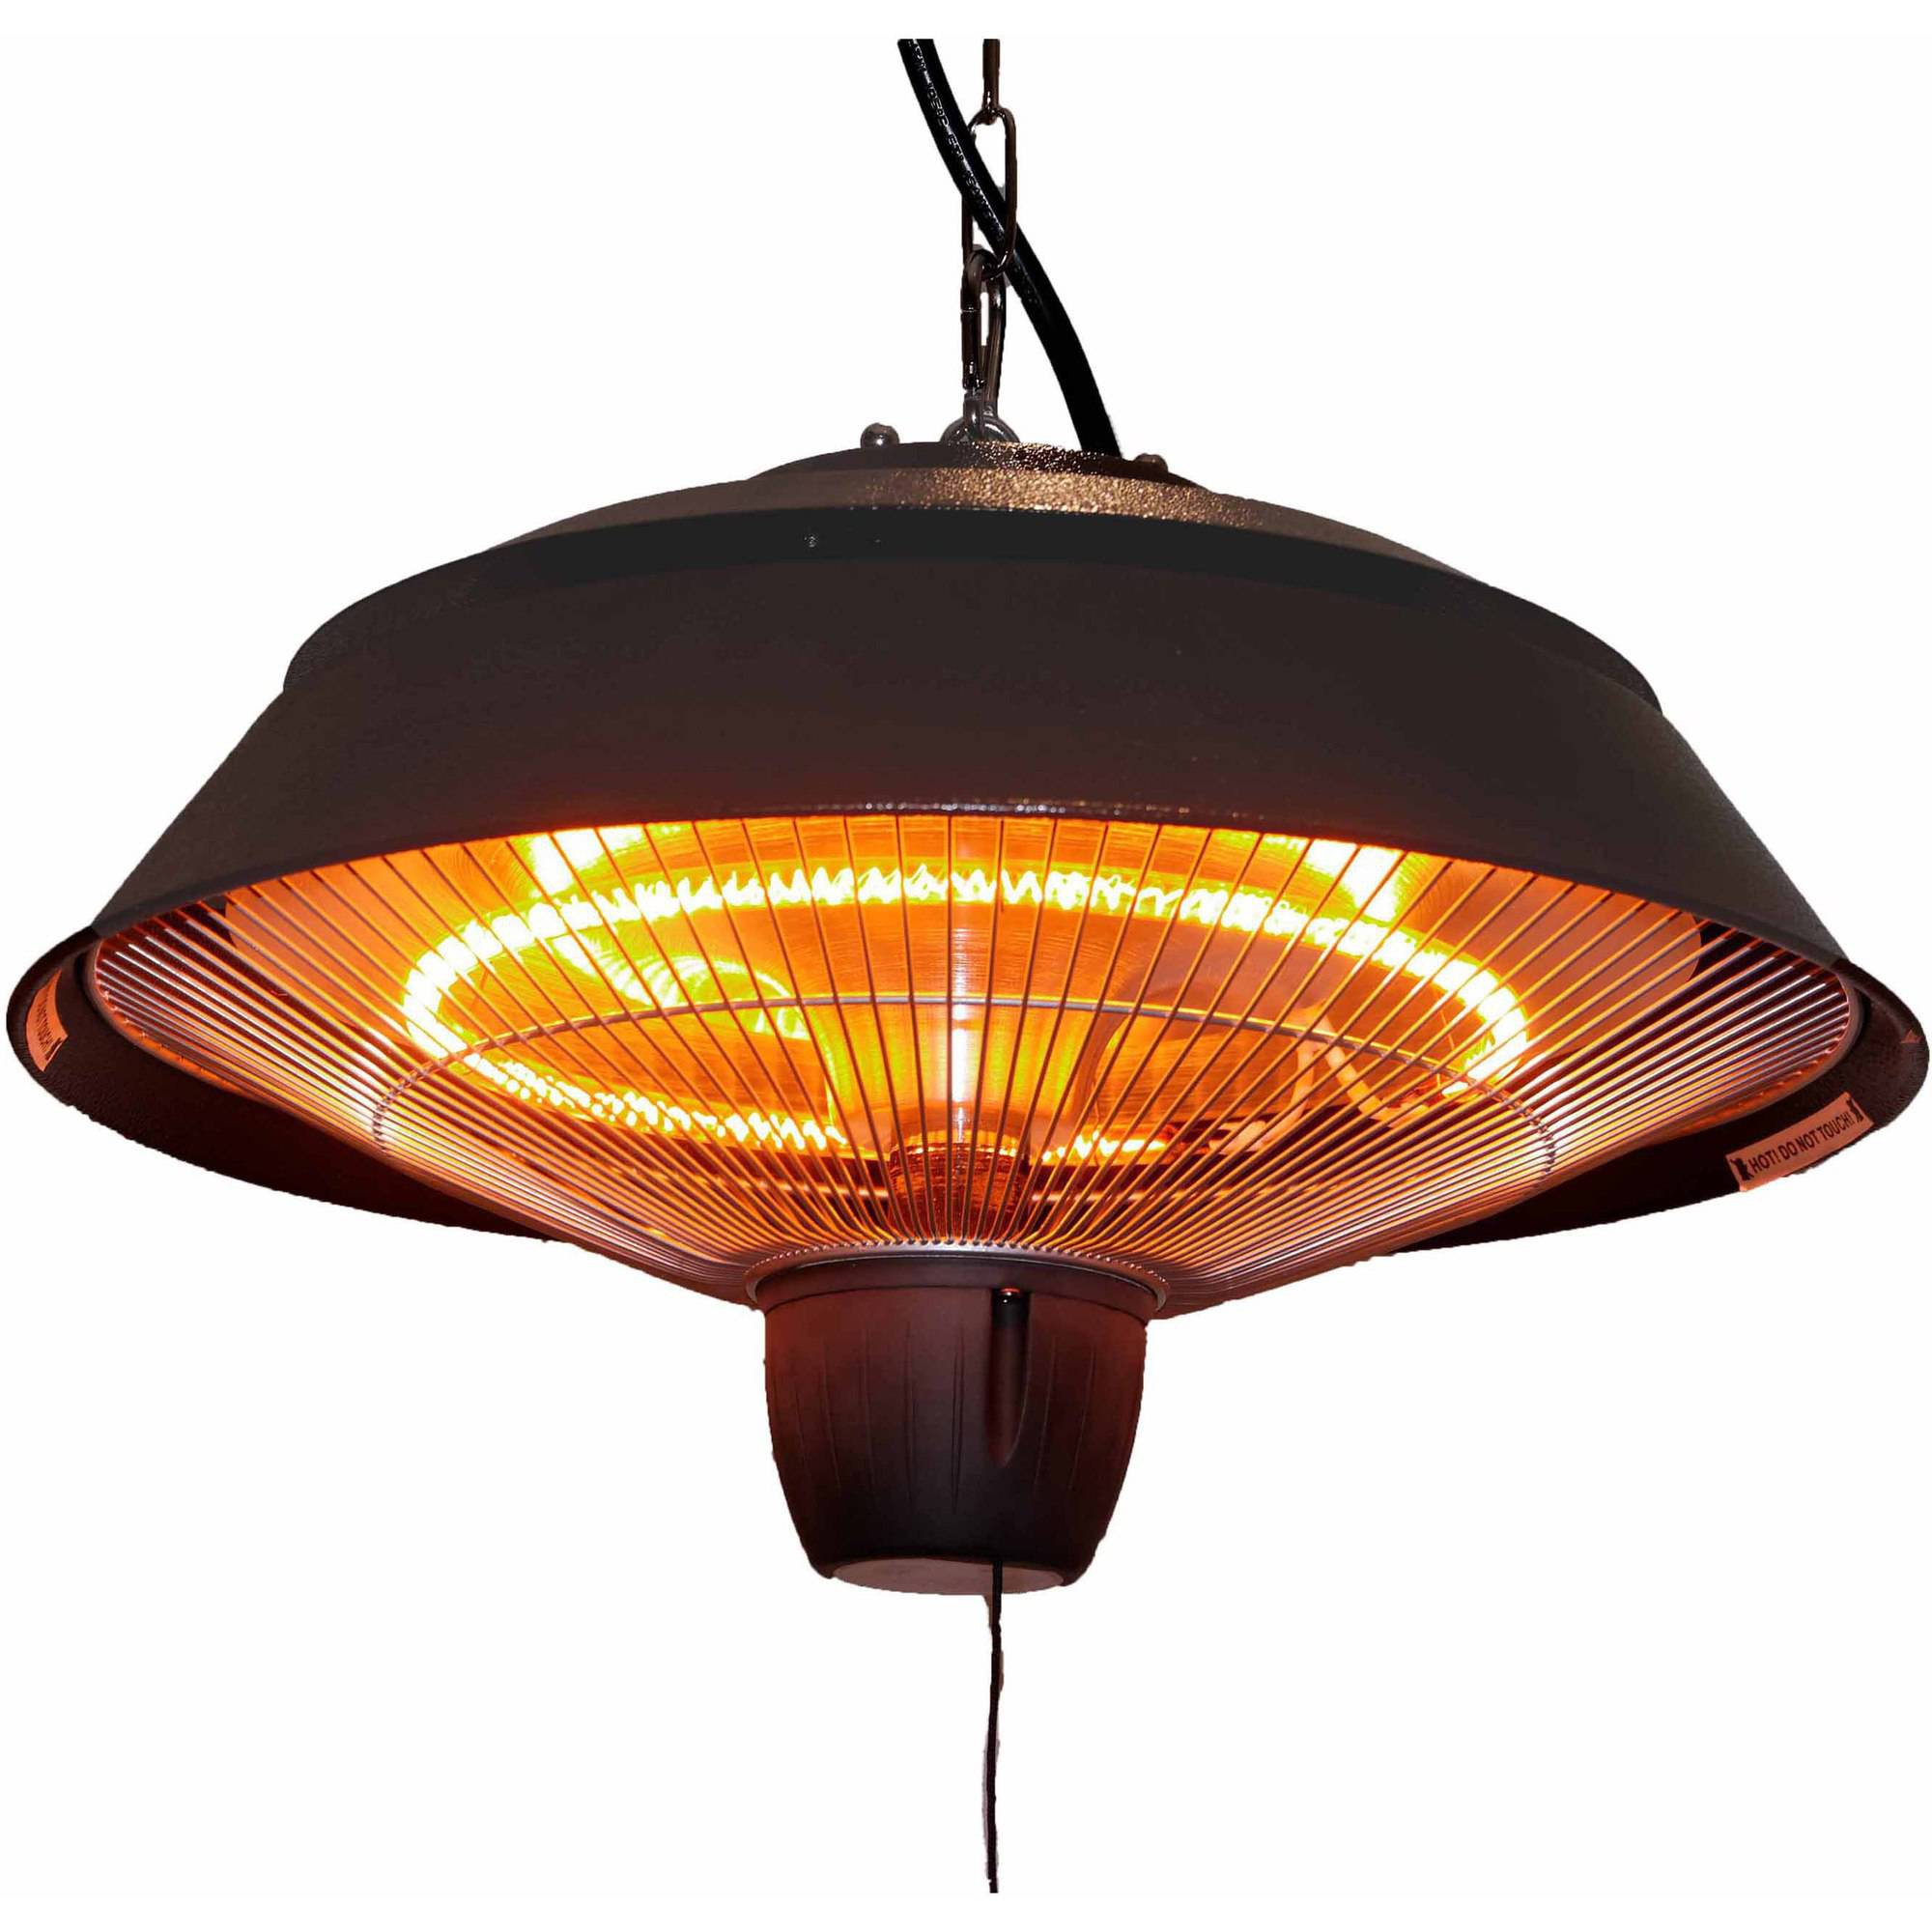 Energ 1500 Watt Hanging Electric Infrared Gazebo Heater Hammered Brown